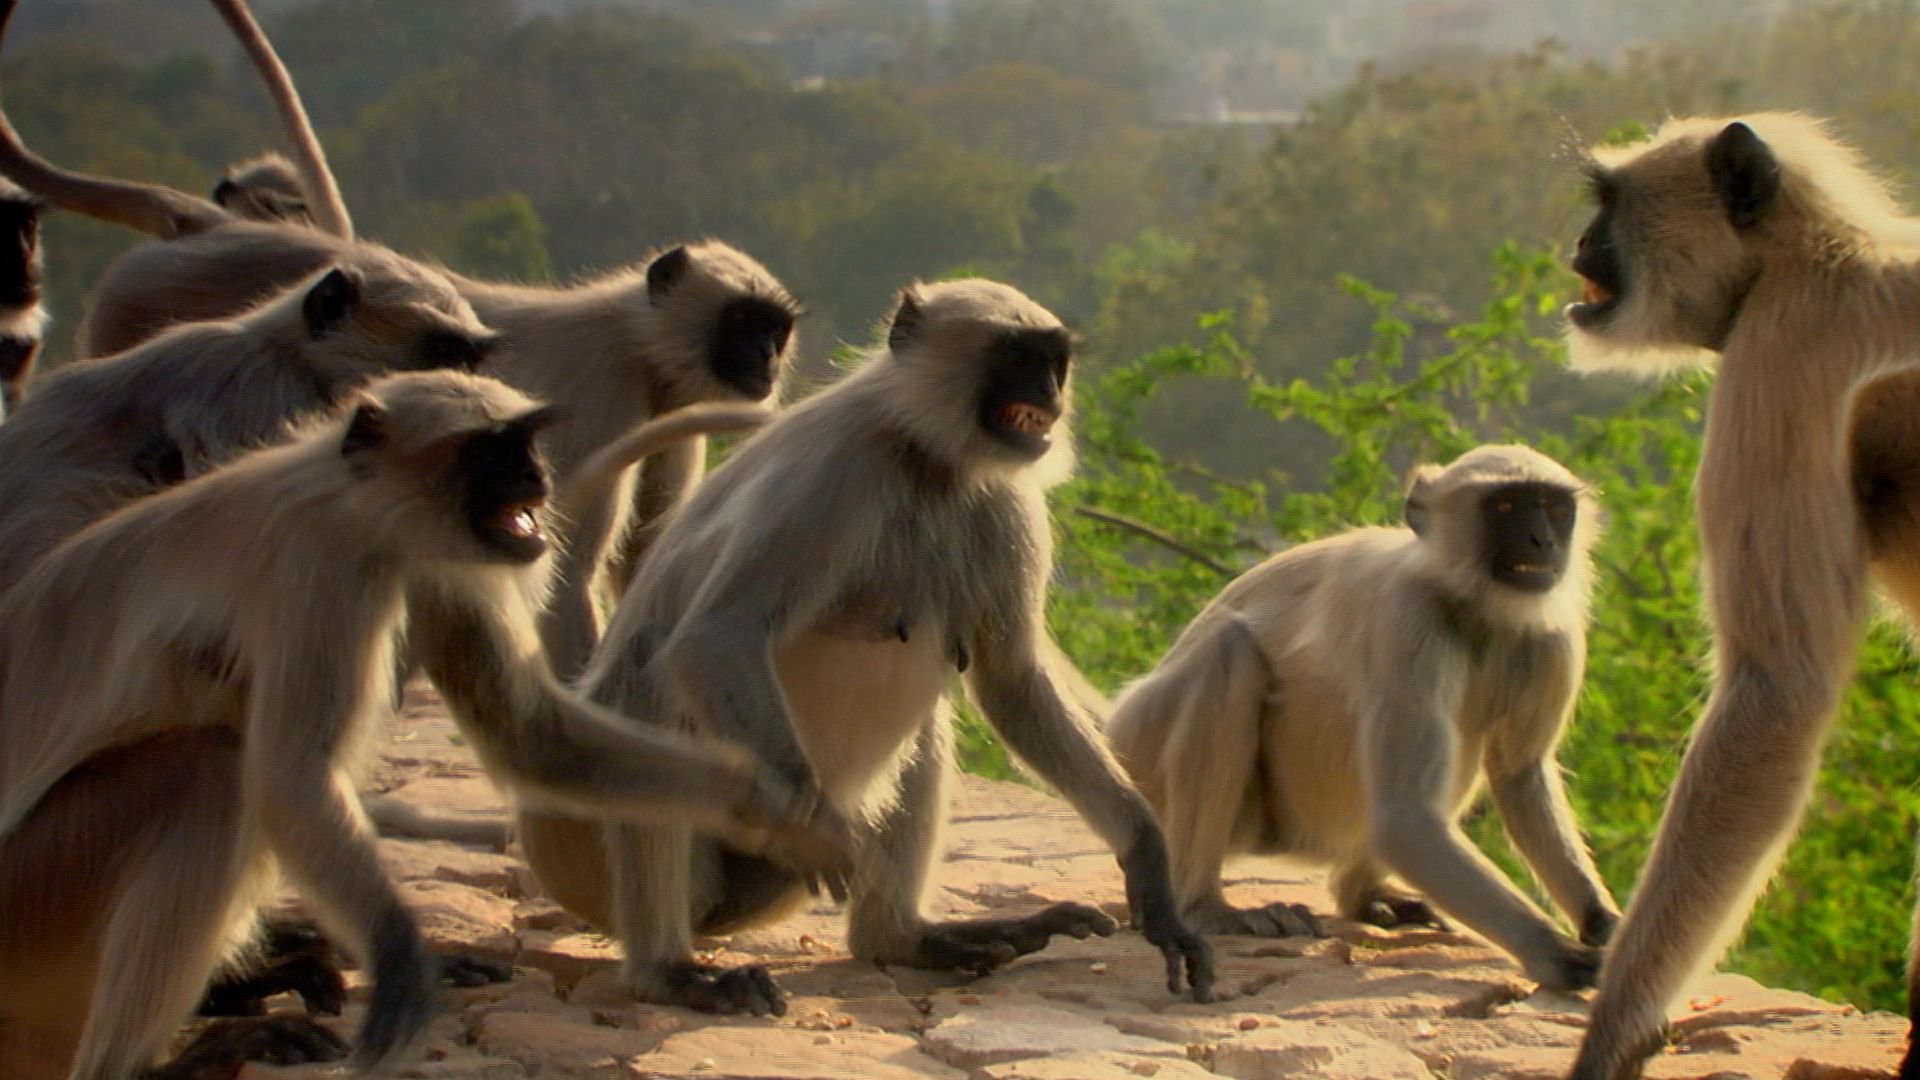 Female hanuman langurs (Semnopithecus entellus) fending off males. This is from Deadly Instincts. [Photo of the day - September 2021]